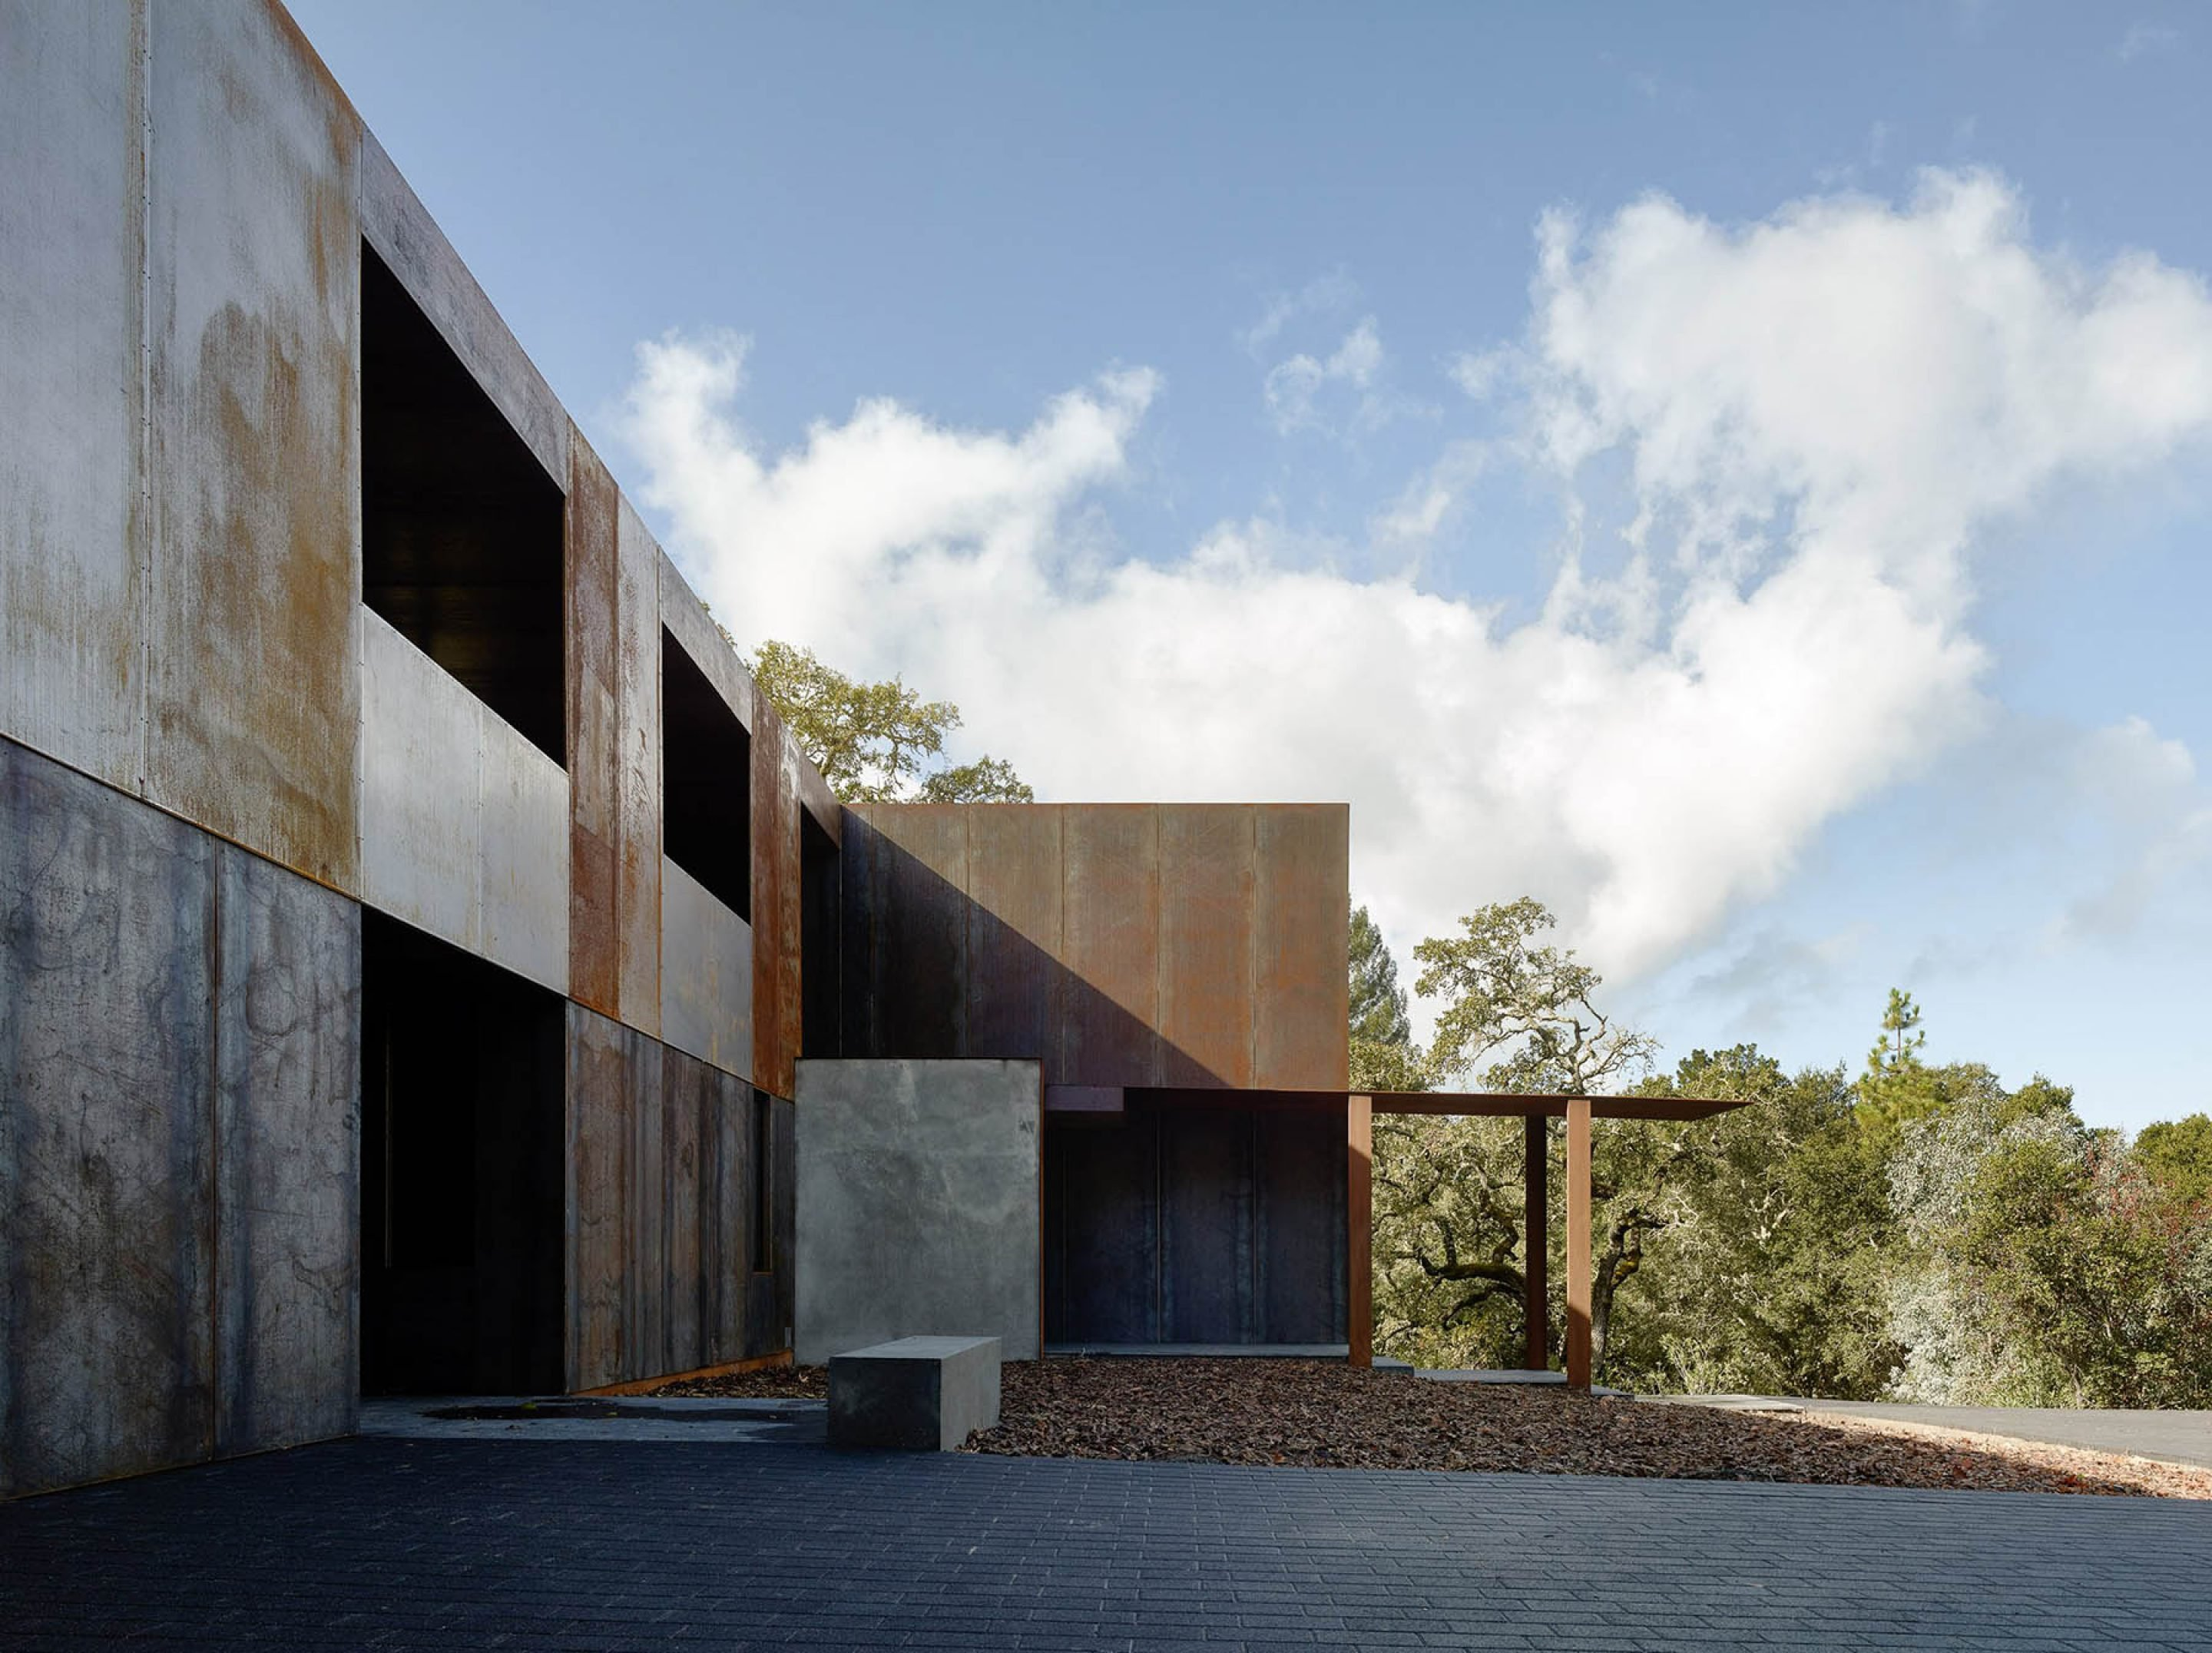 iGNANT-Architecture-Faulker-Architects-Weathering-Steel-Home-003